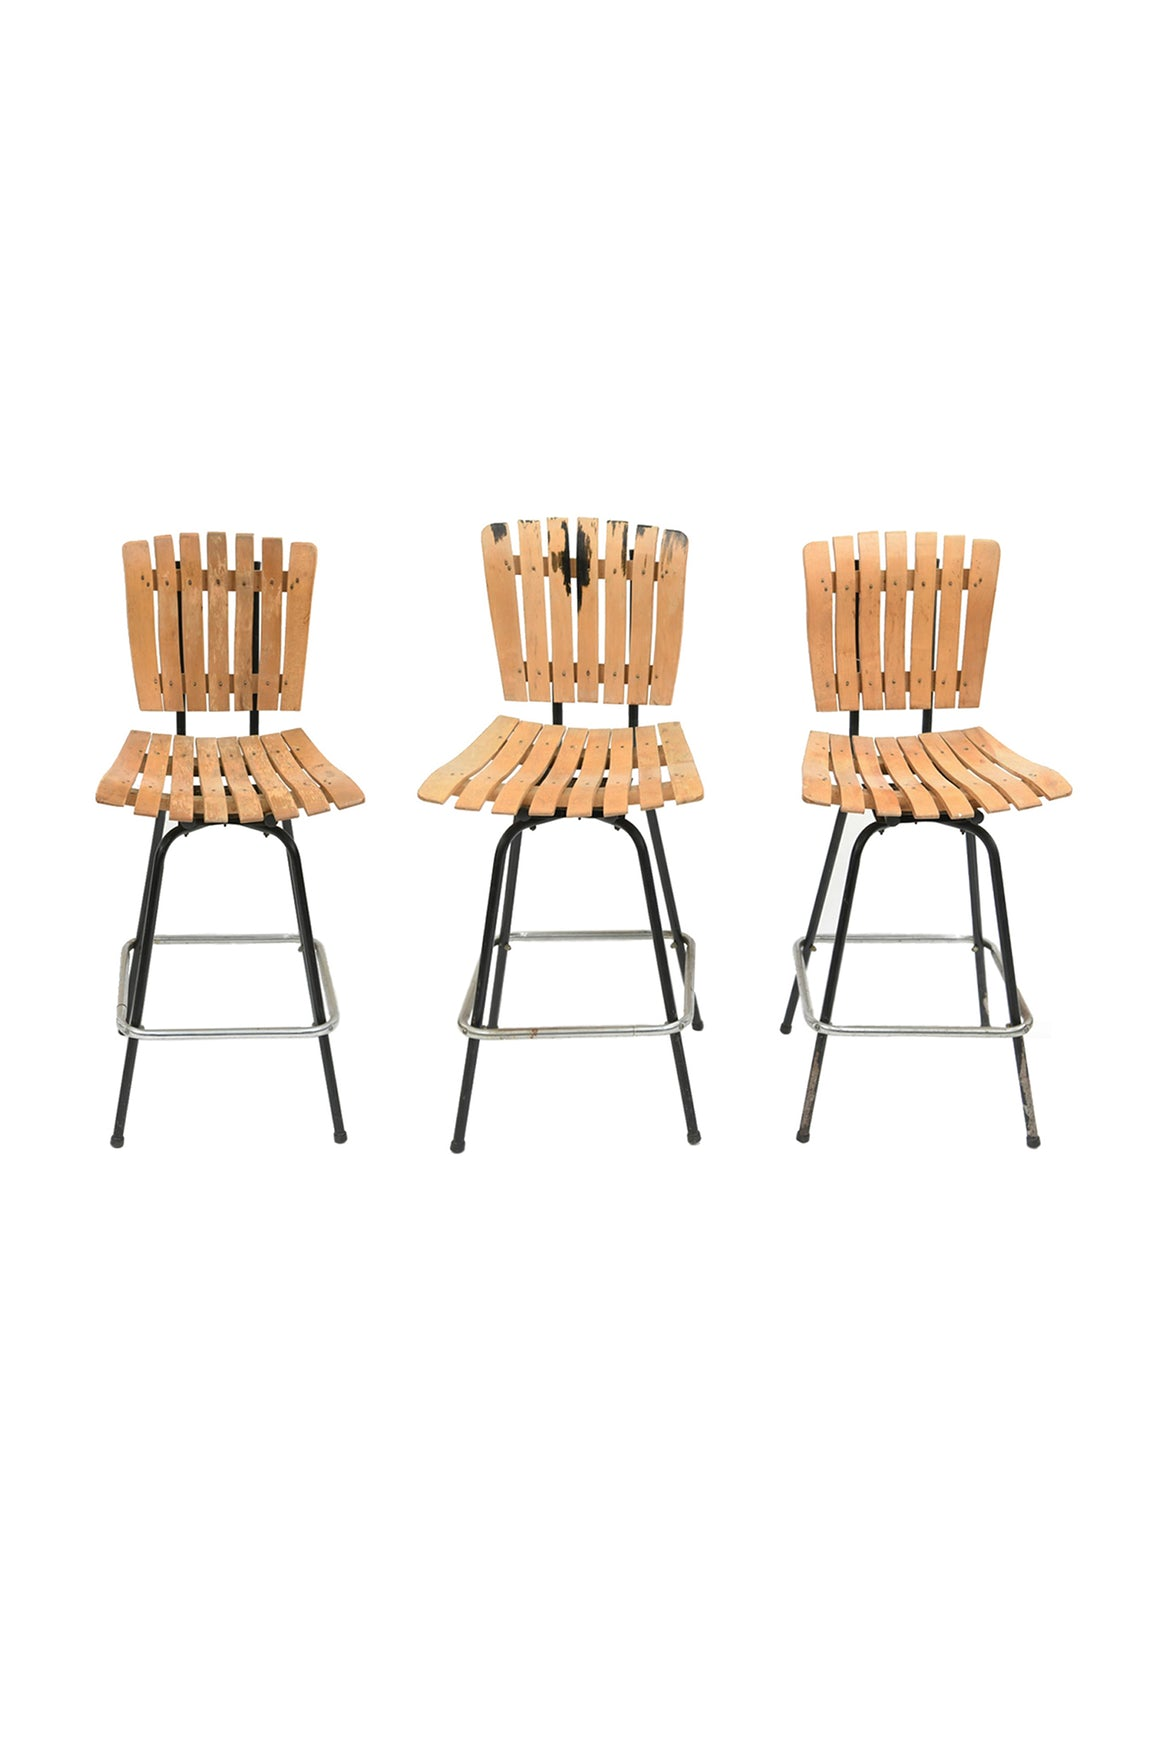 Set of 3 Arthur Umanoff Style Swivel Bar Stools